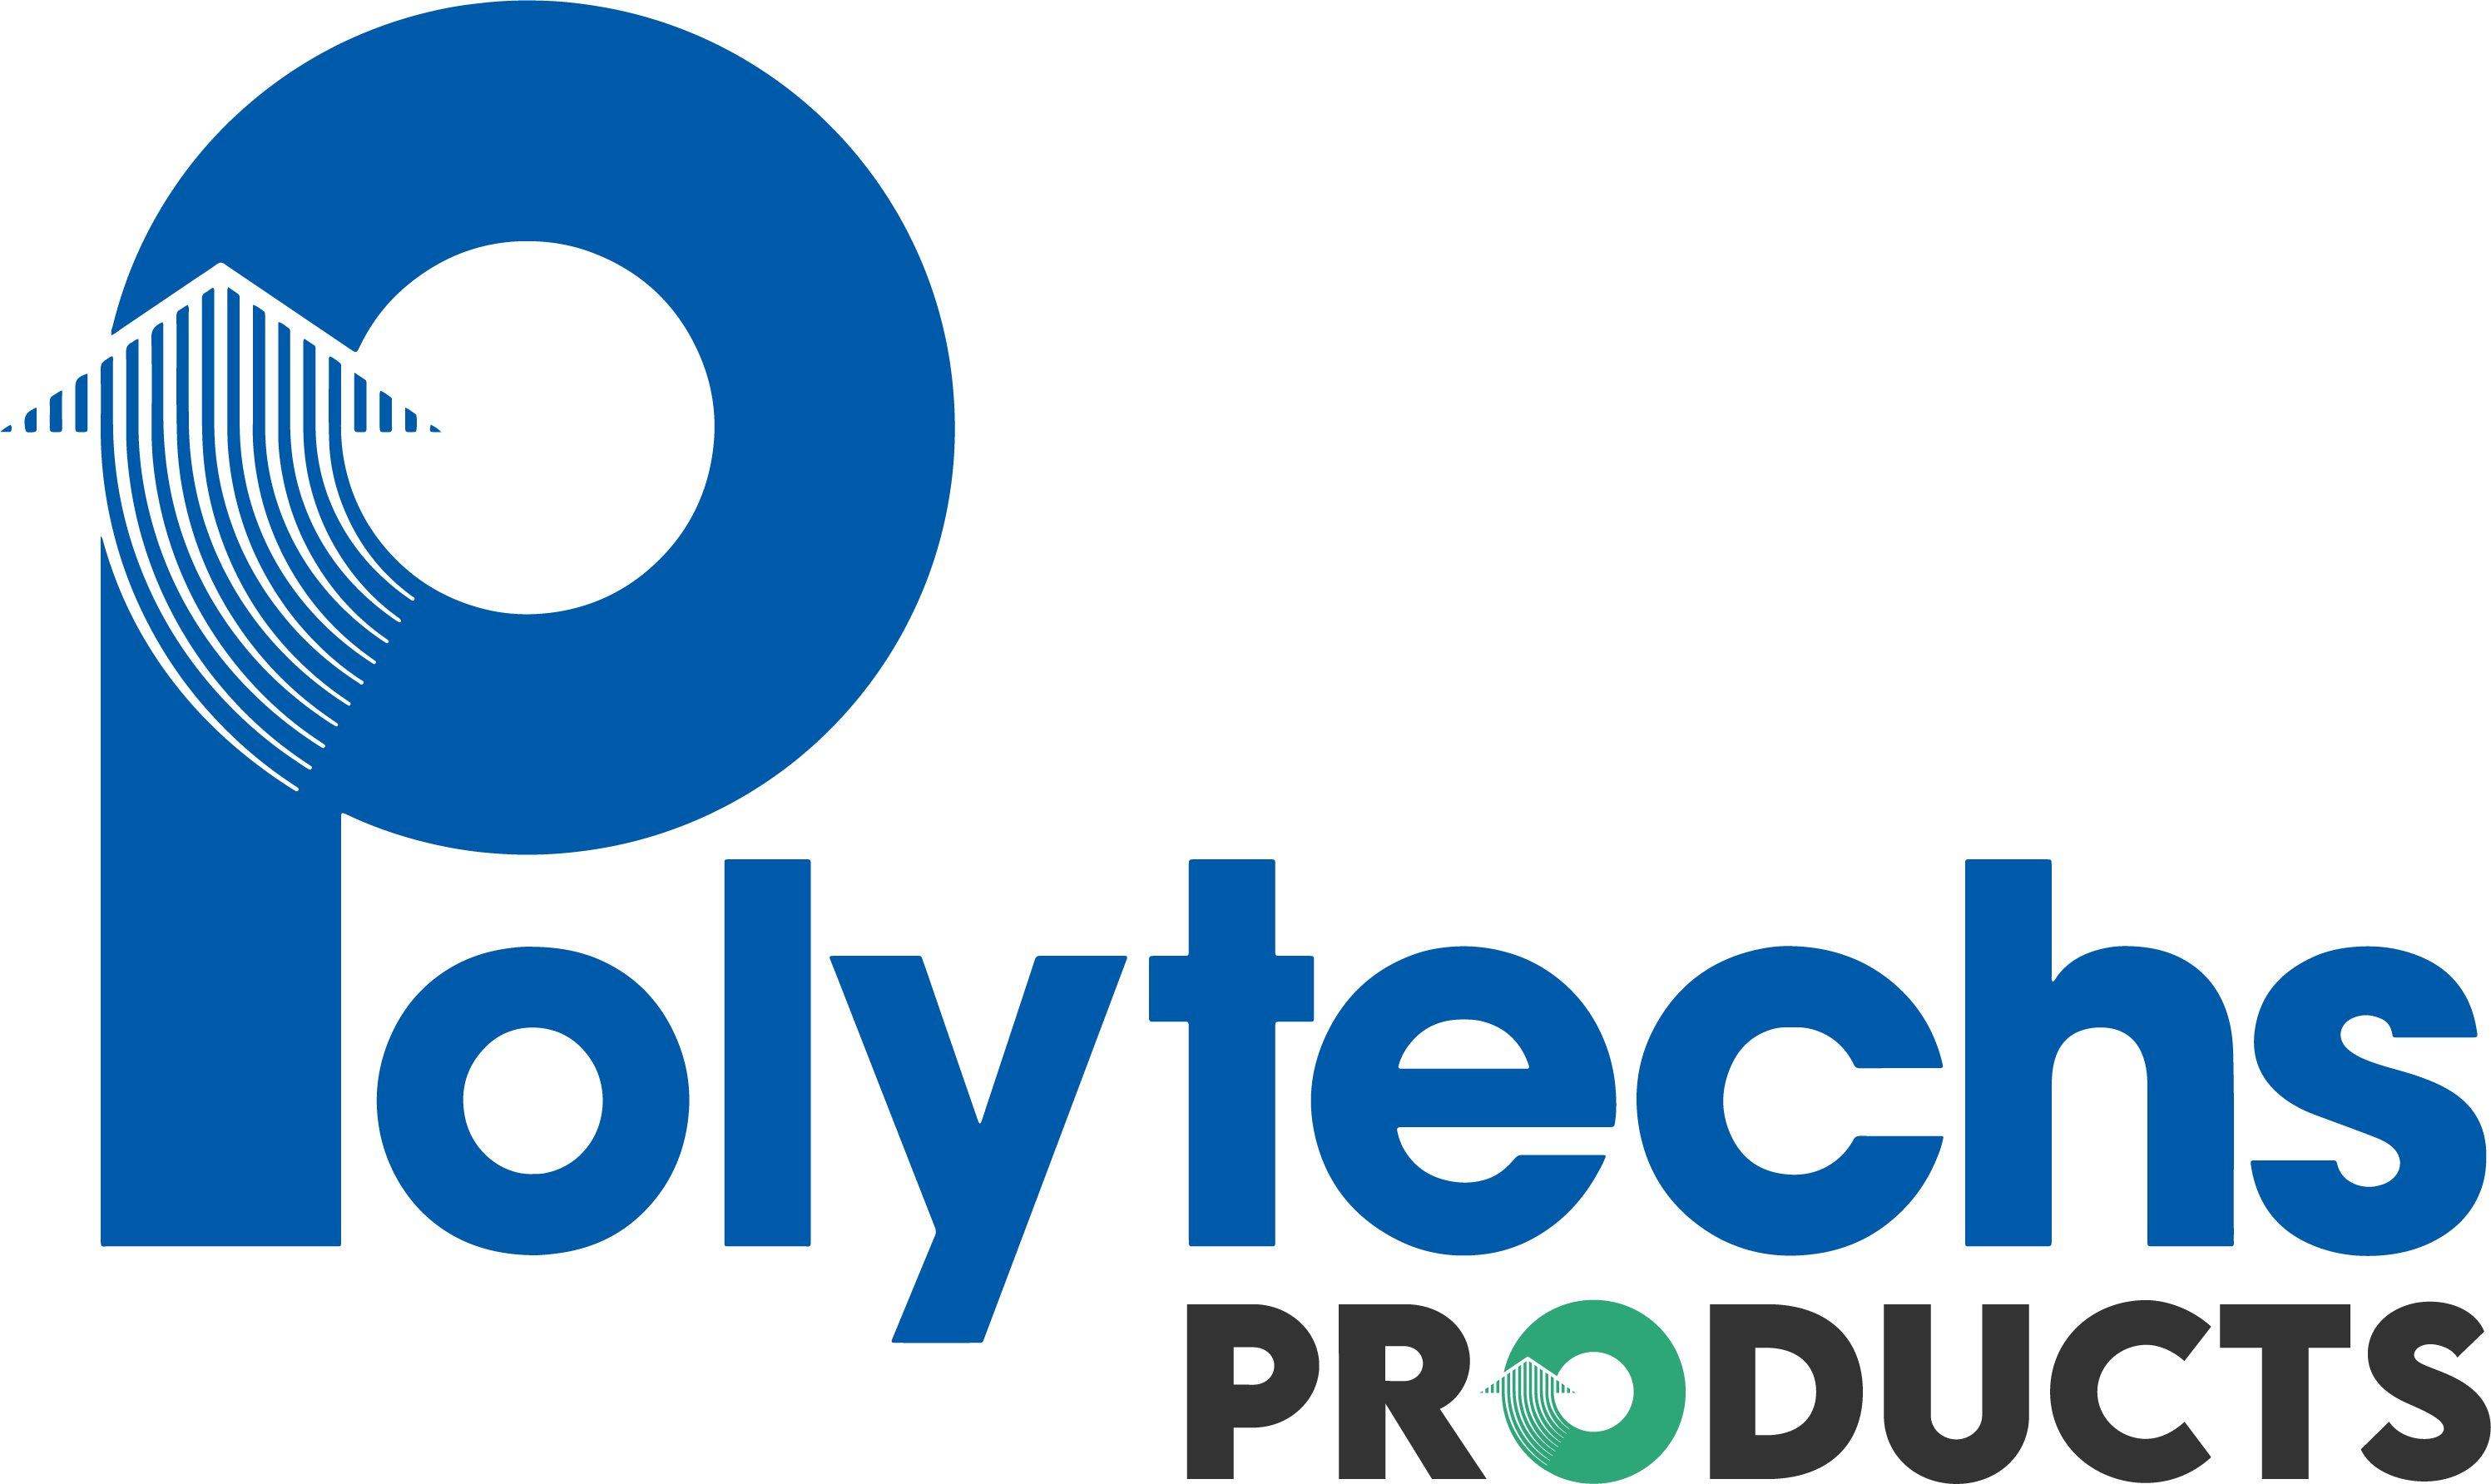 Polytechs Products